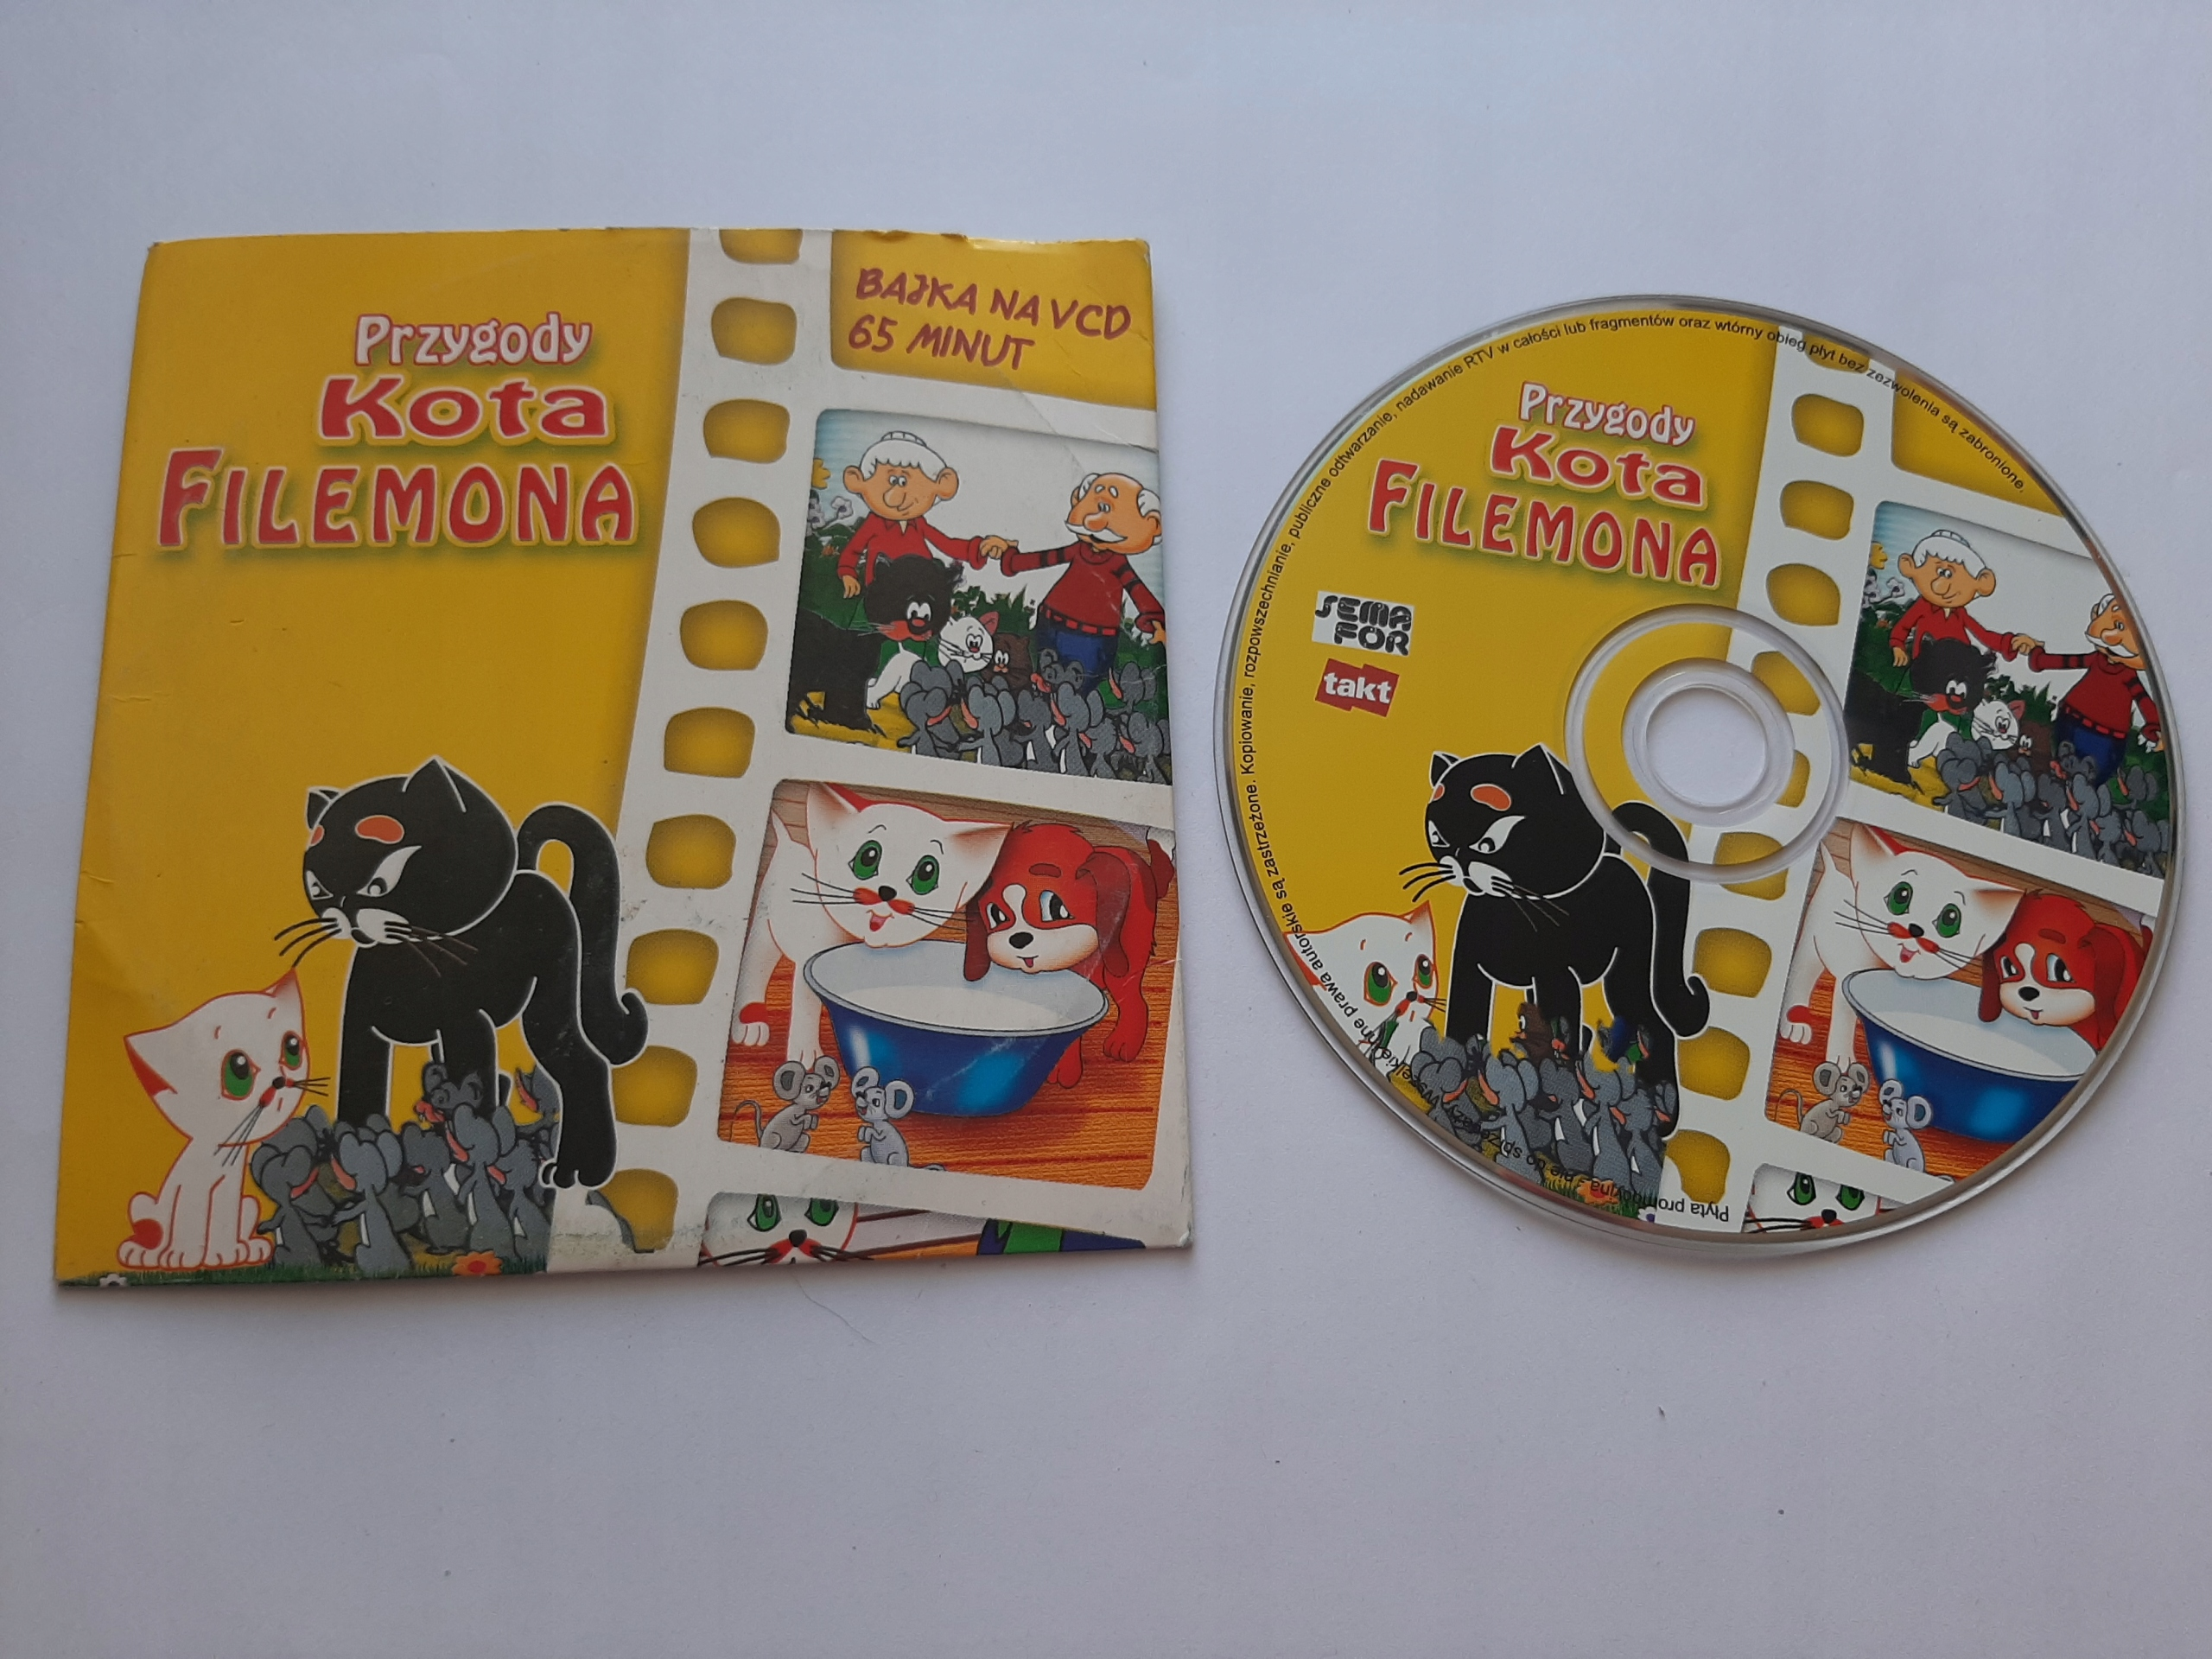 Item * Adventures of a Cat of Philemon, a tale to VCD, 65 minutes